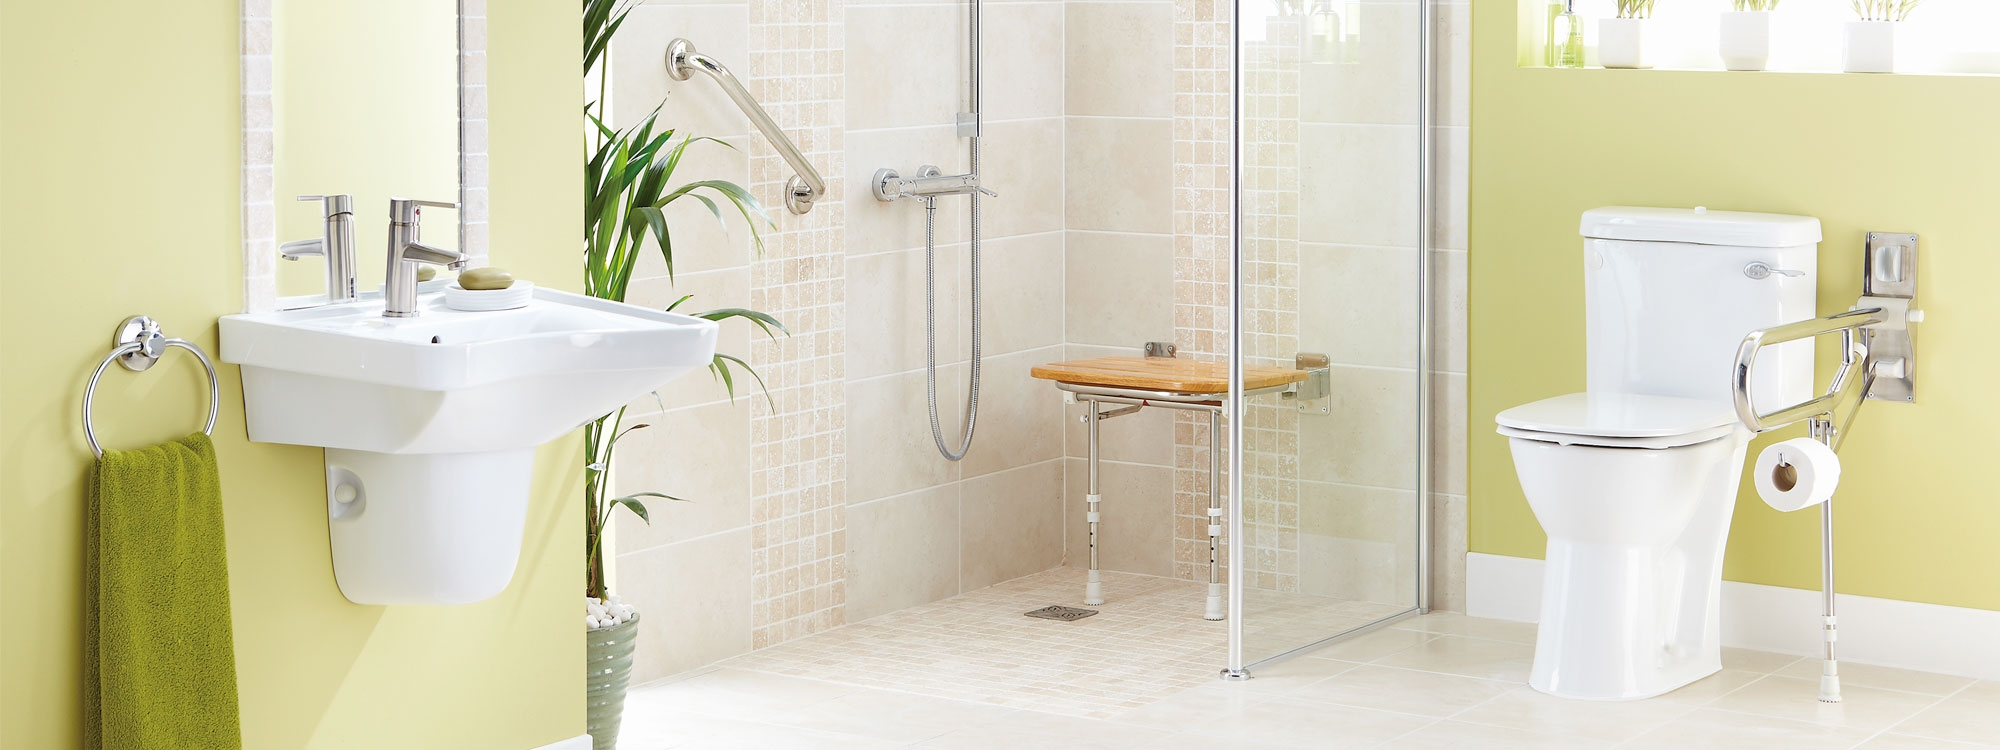 Safe practical bathrooms designed fit by more ability for Bathroom designs elderly